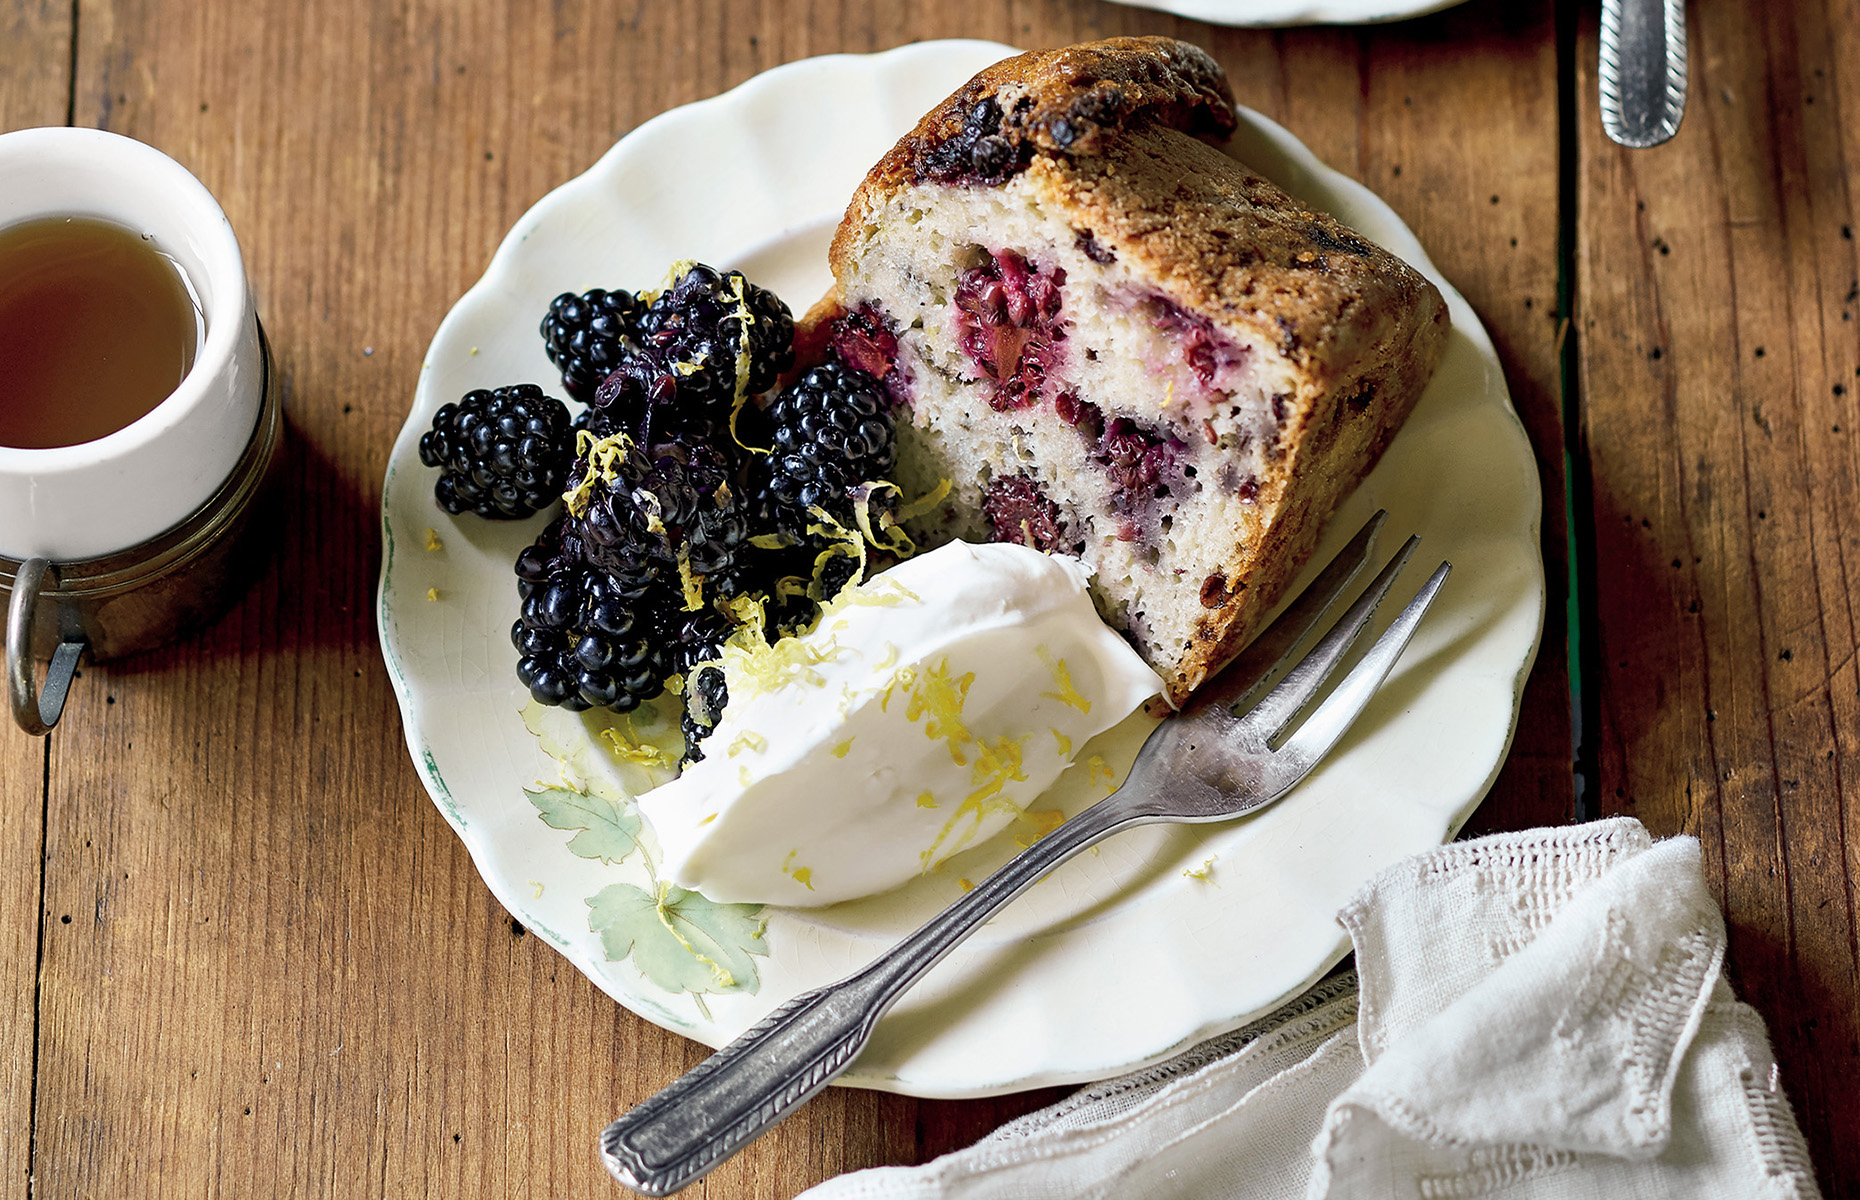 Blackberry and coffee cake